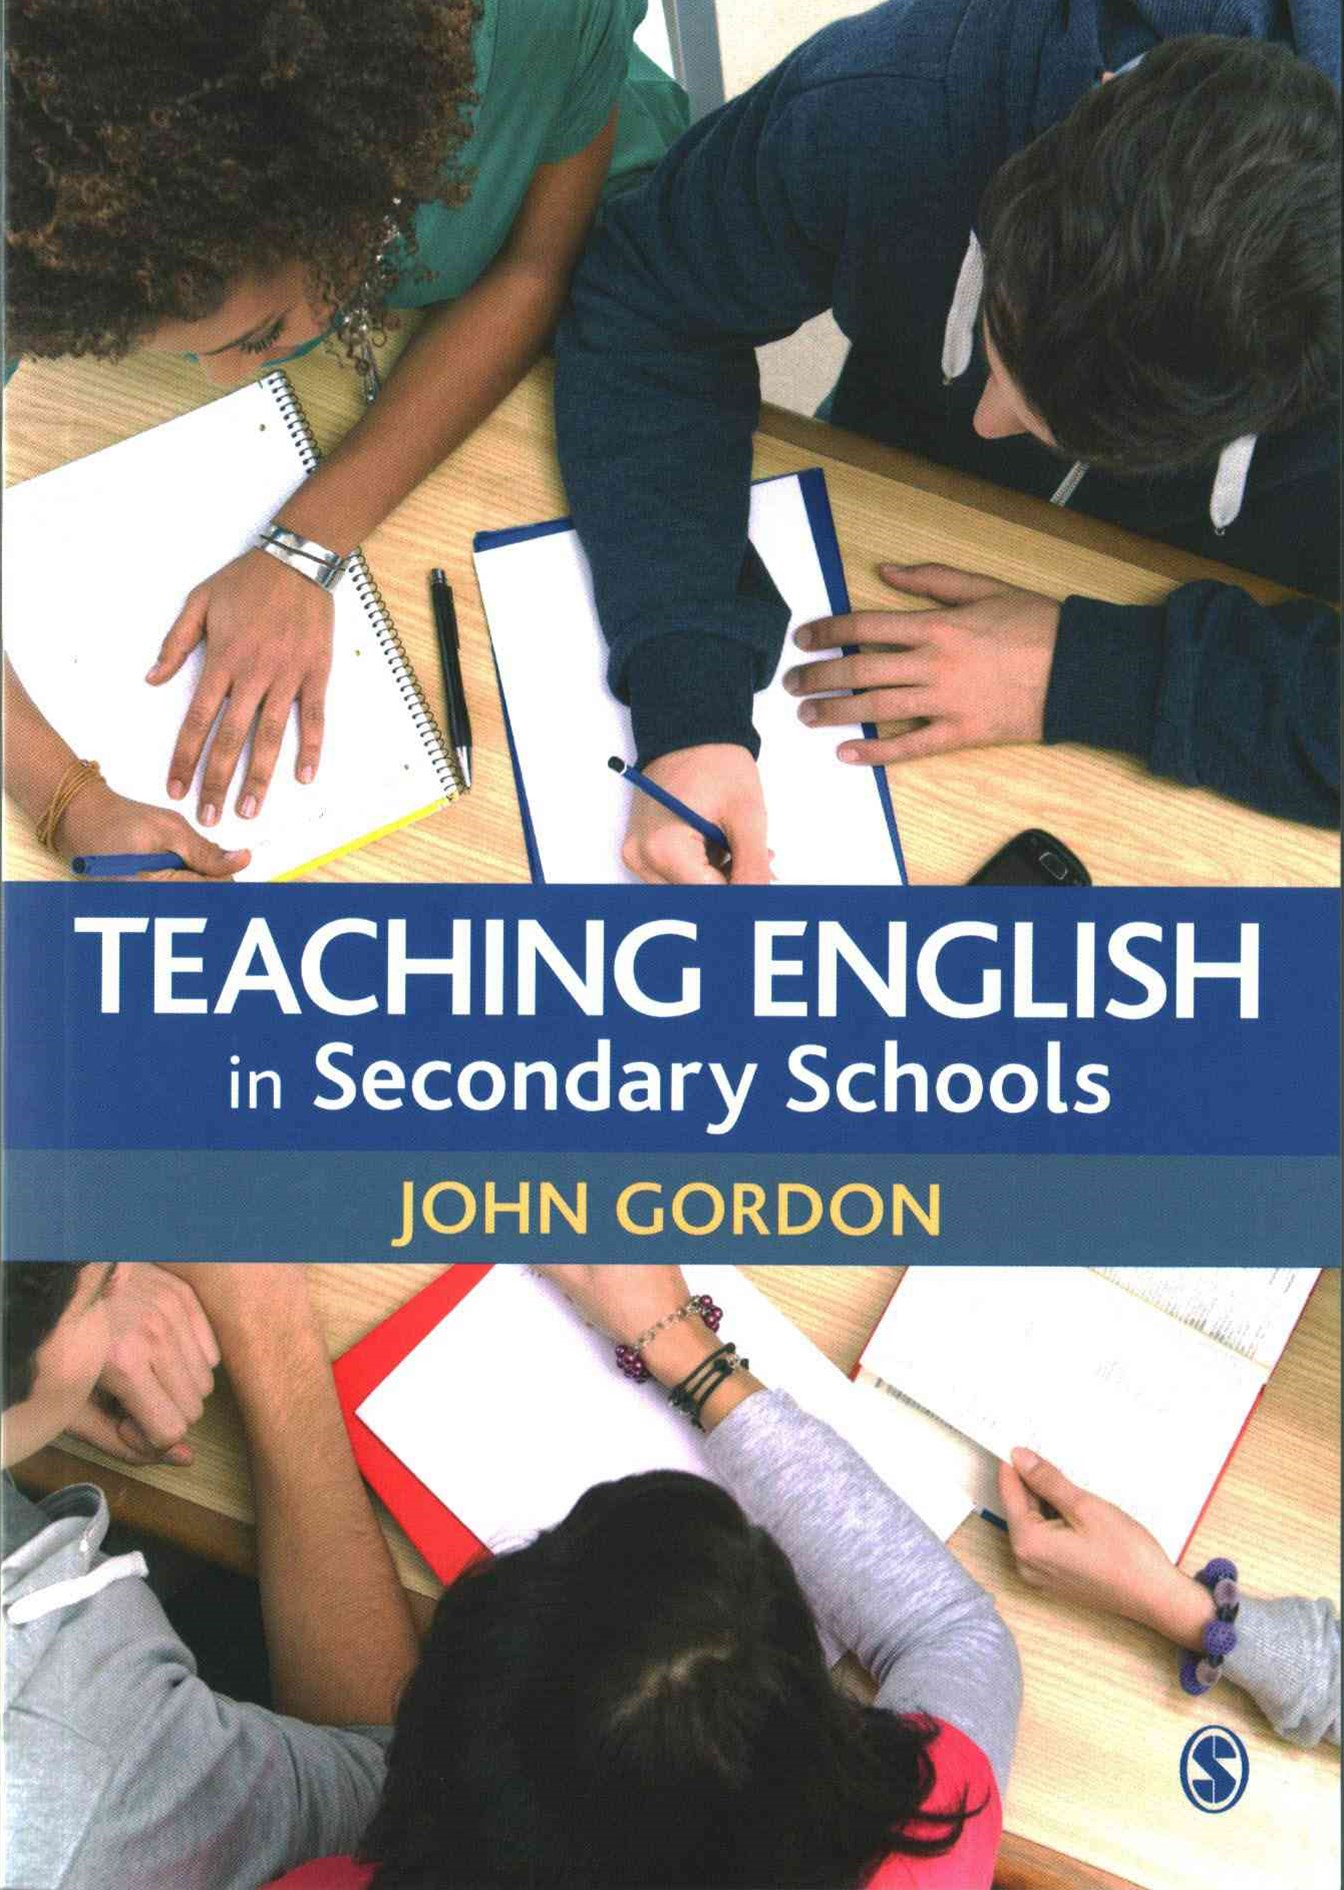 Teaching English in Secondary Schools